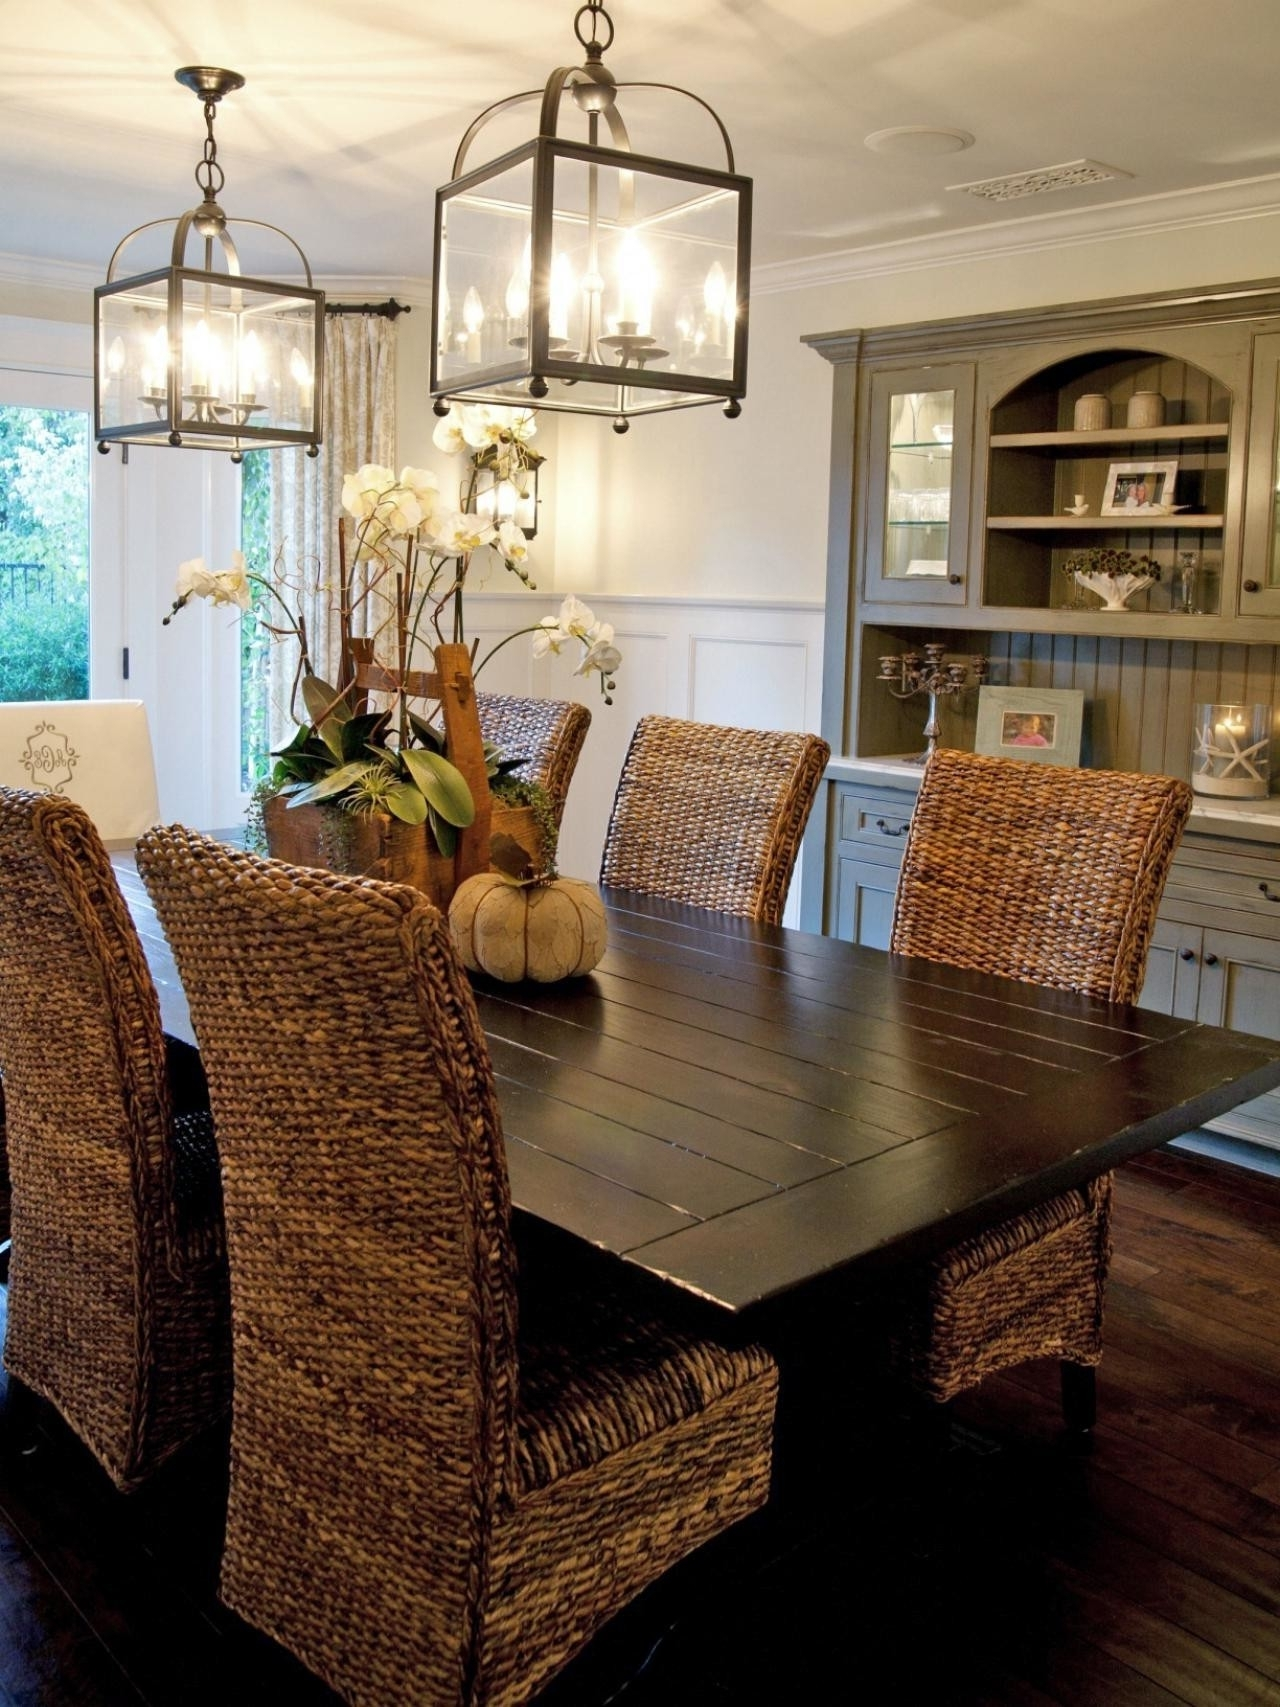 Indoor Lantern Chandelier Pertaining To Favorite Lantern Chandeliers Large Indoor Lantern Chandelier Bronze Lantern (View 7 of 20)